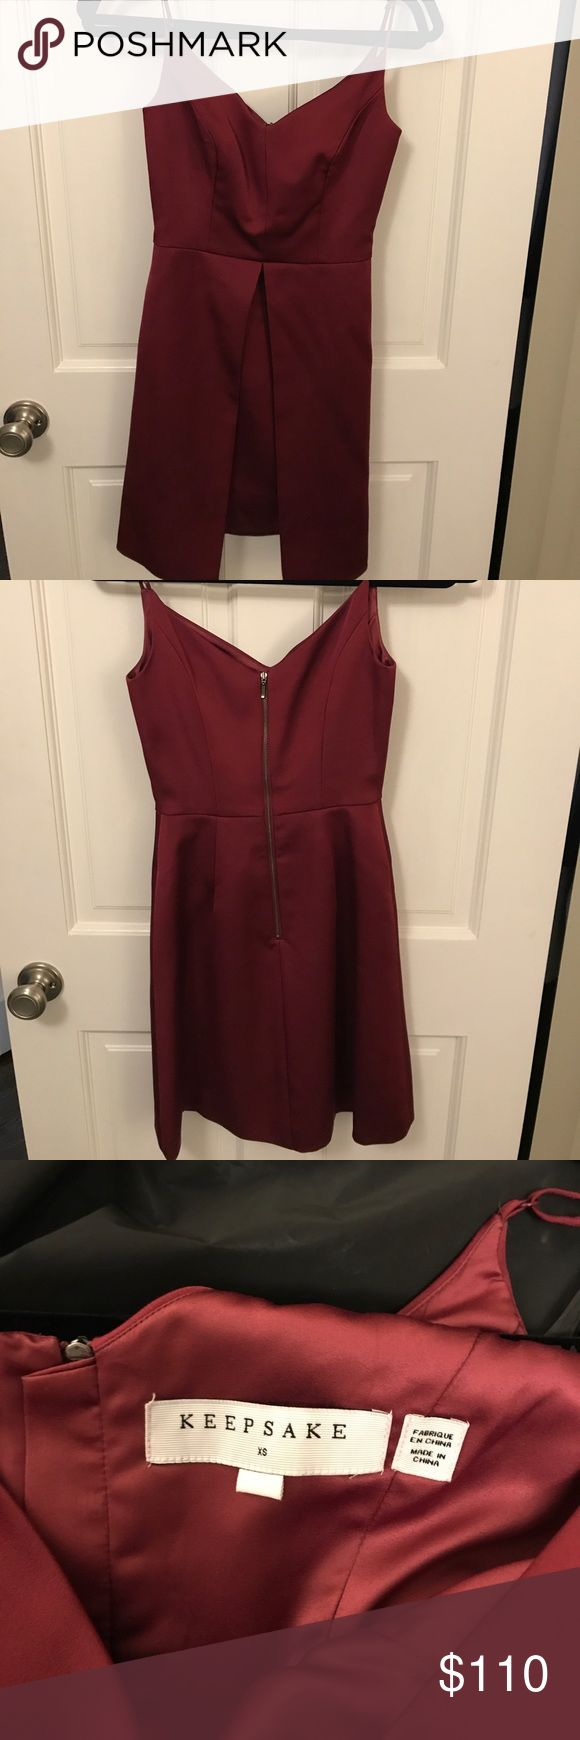 Keepsake, burgundy rehearsal dinner guest dress Beautiful Keepsake burgundy thick satin dress worn once for a rehearsal dinner! Size XS very unique, dress is a mini dress with an outer over laying skirt that is an A-line flare! KEEPSAKE the Label Dresses Wedding